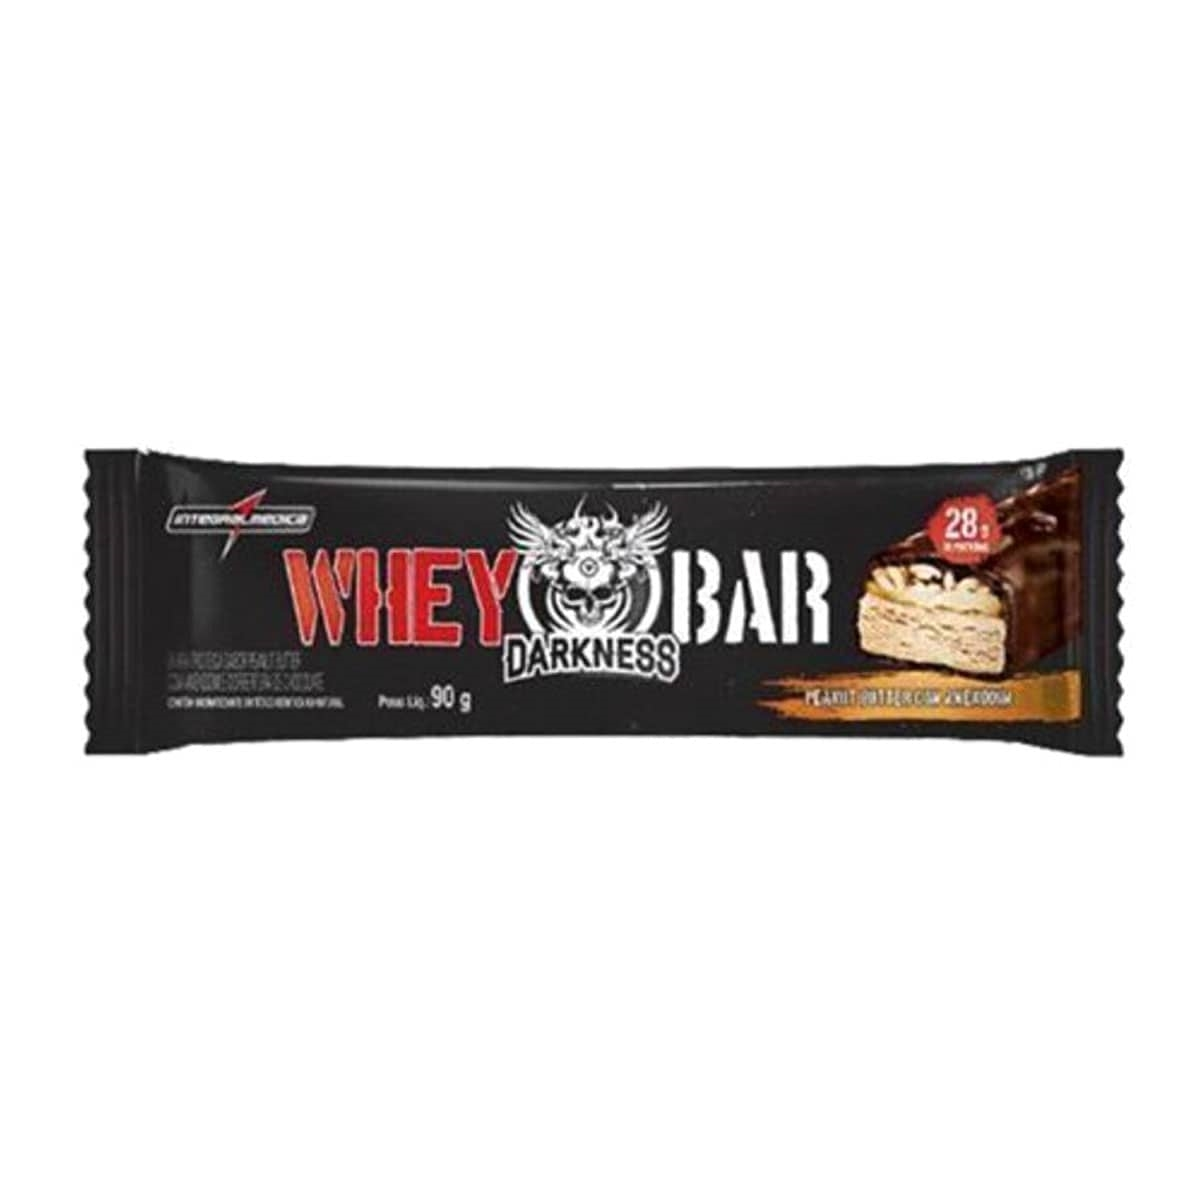 fb3096589 Whey Bar Darkness 90g - Doce de Leite - Integral Medica - Whey Store ...